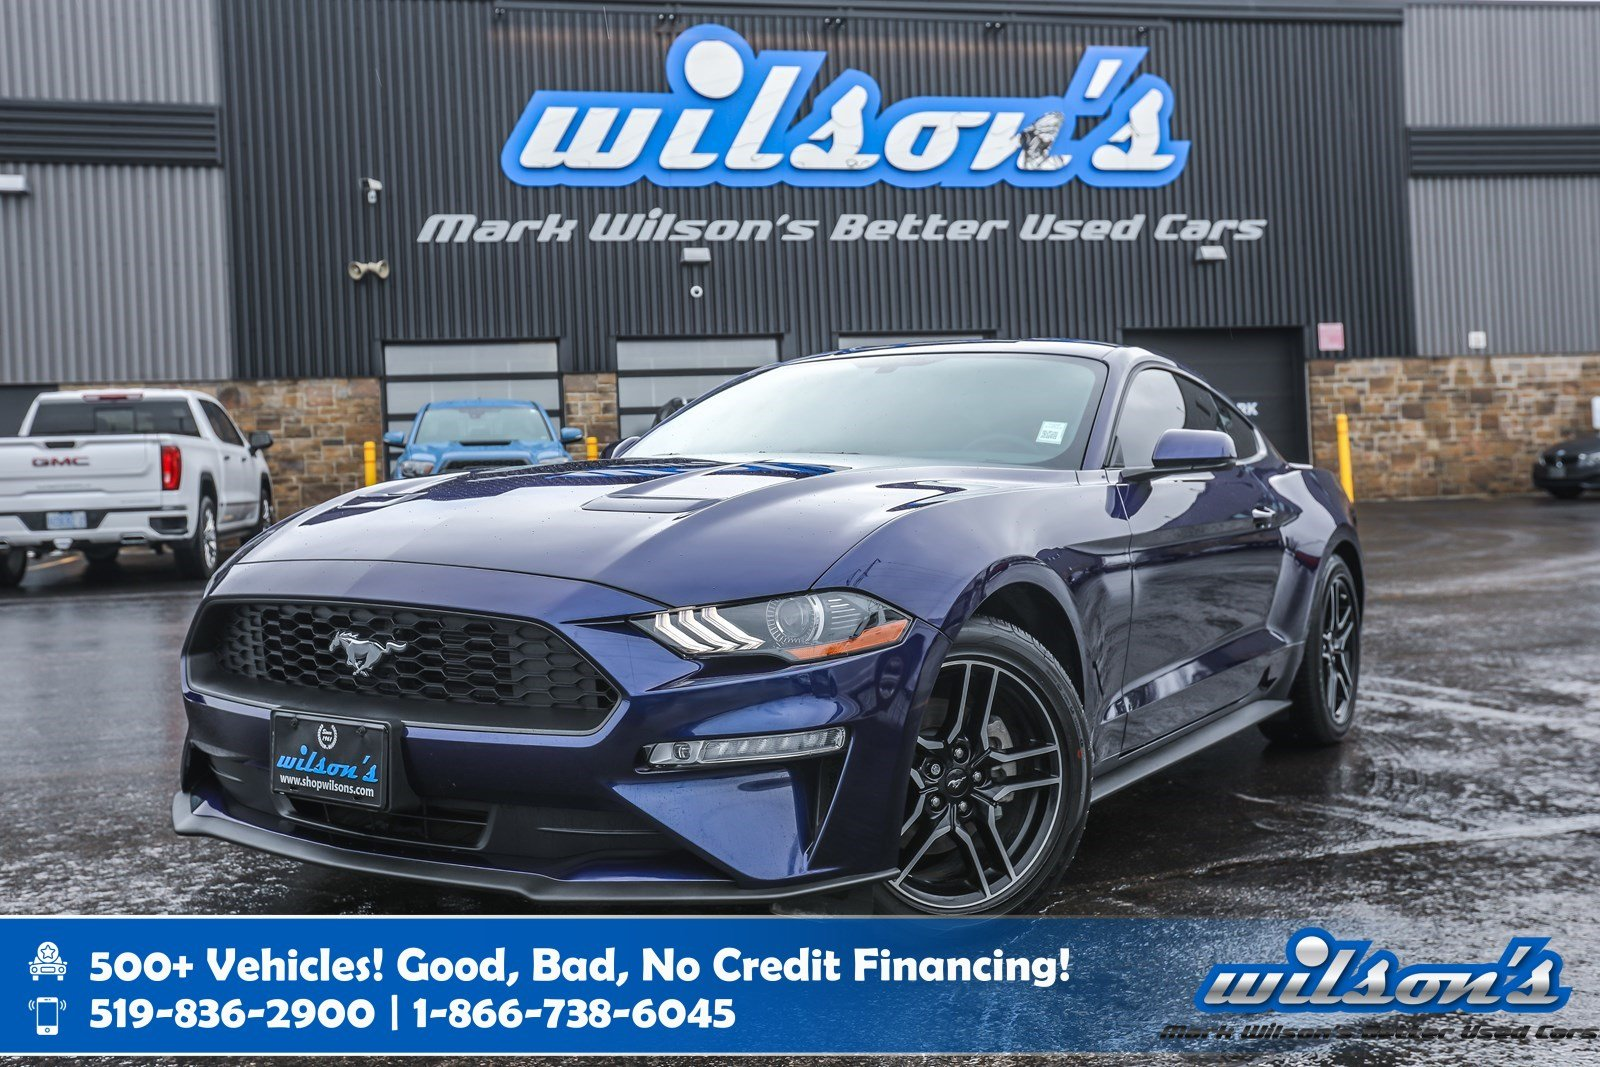 Certified Pre-Owned 2019 Ford Mustang EcoBoost Premium Used, 1000 KM! Leather, Rear Camera, Heated + A/C Seats, Bluetooth and more!